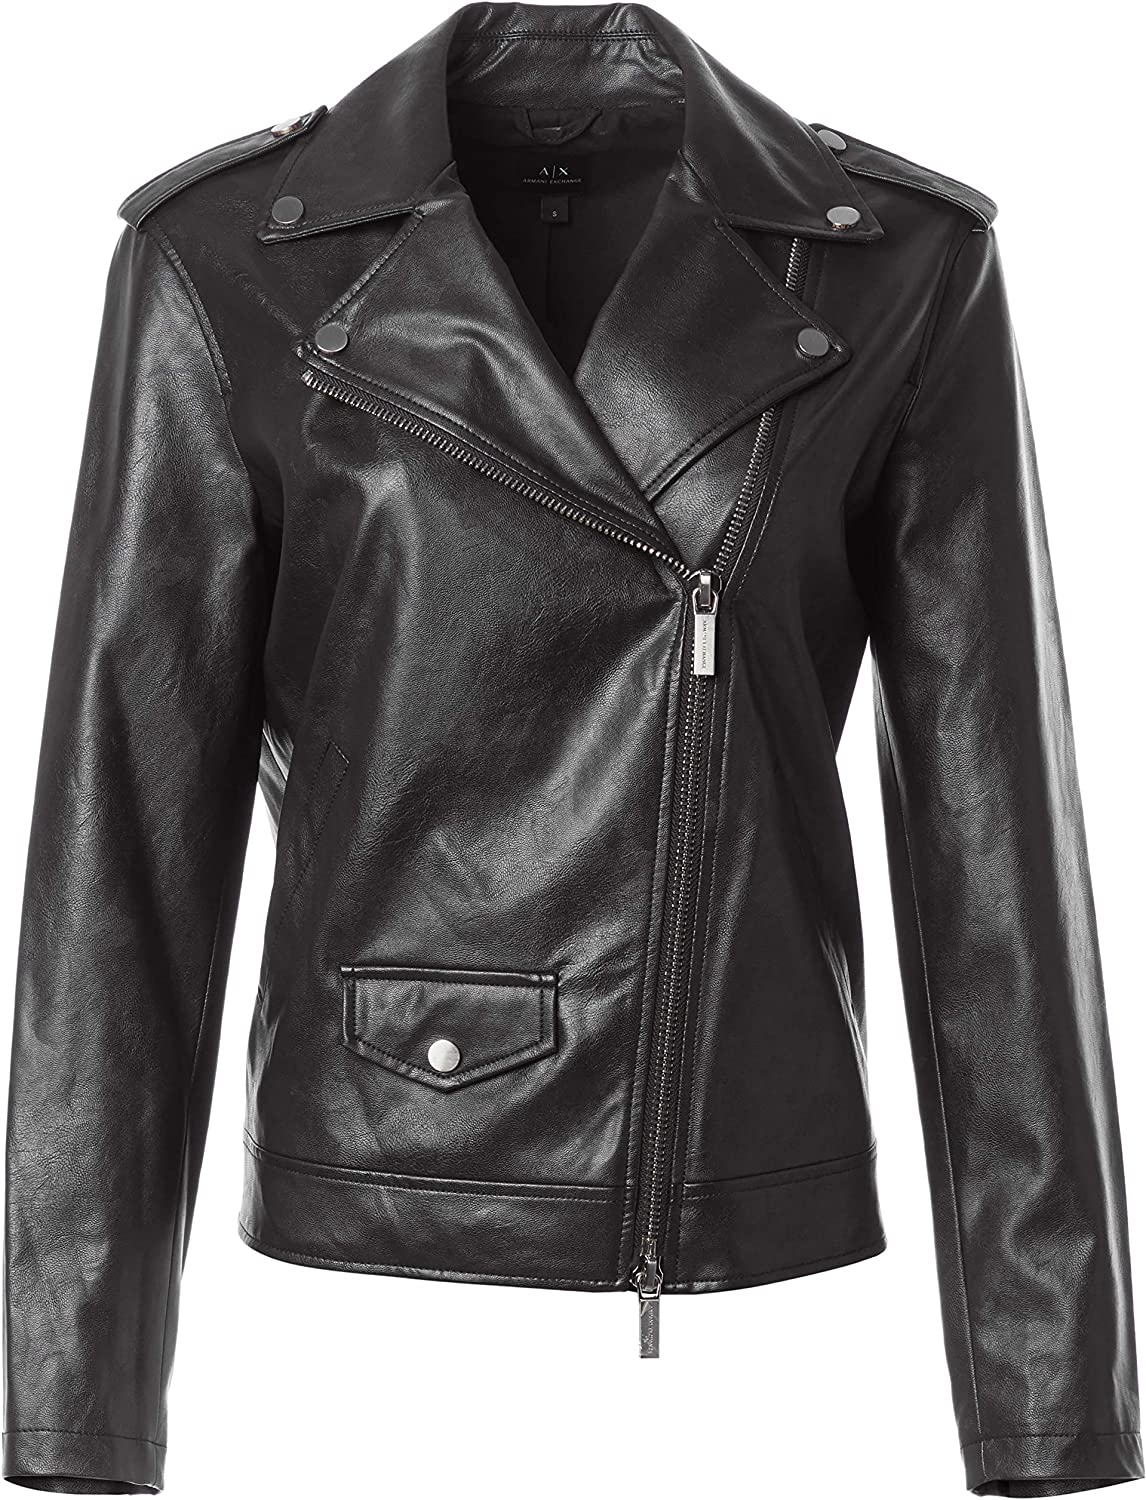 AX Armani Exchange Women's Relaxed Fit Eco Leather Motorcycle Jacket